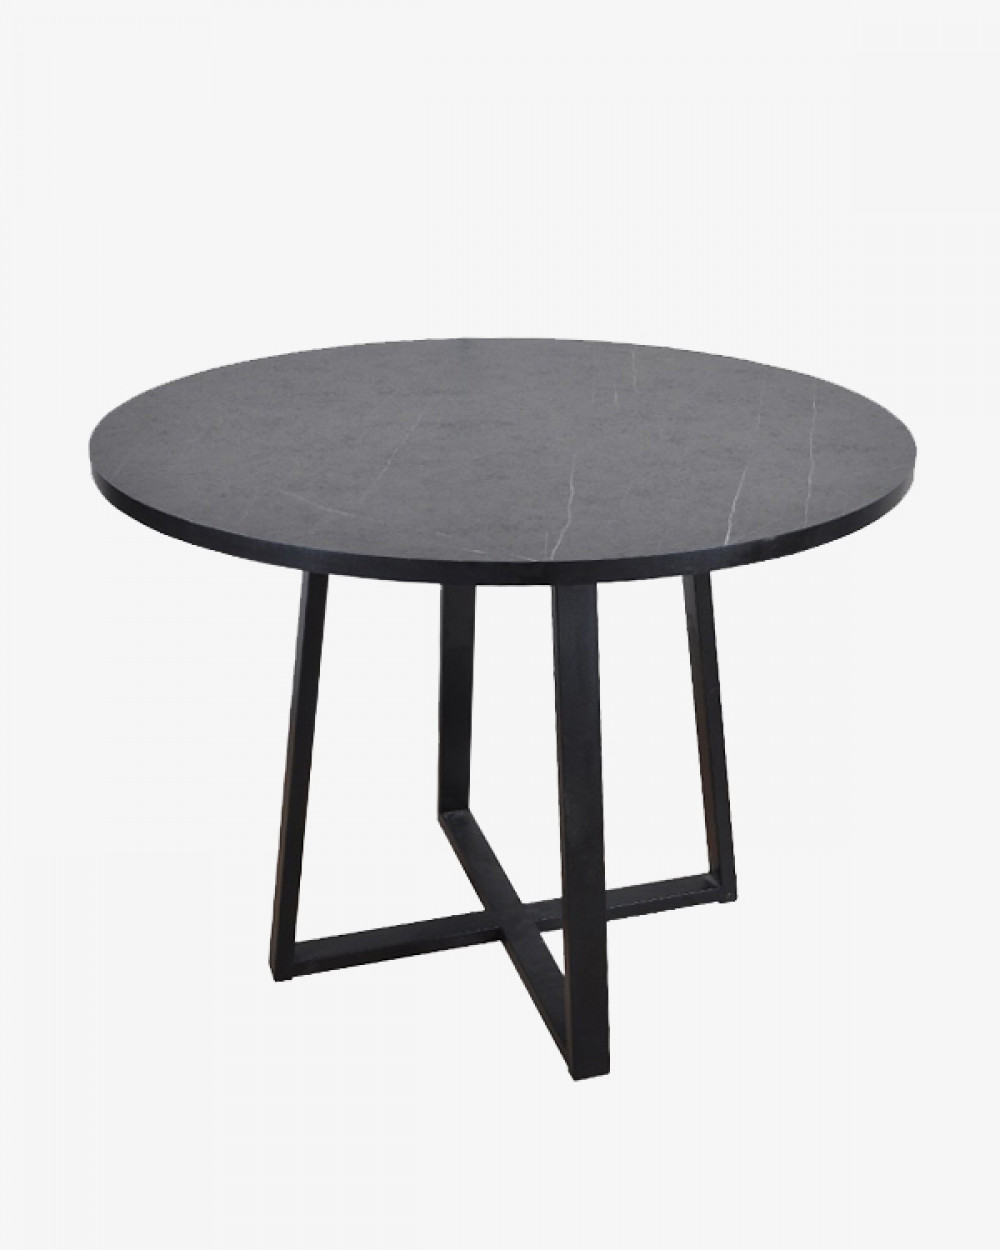 Clarks Round Dining Table | Grey Stone